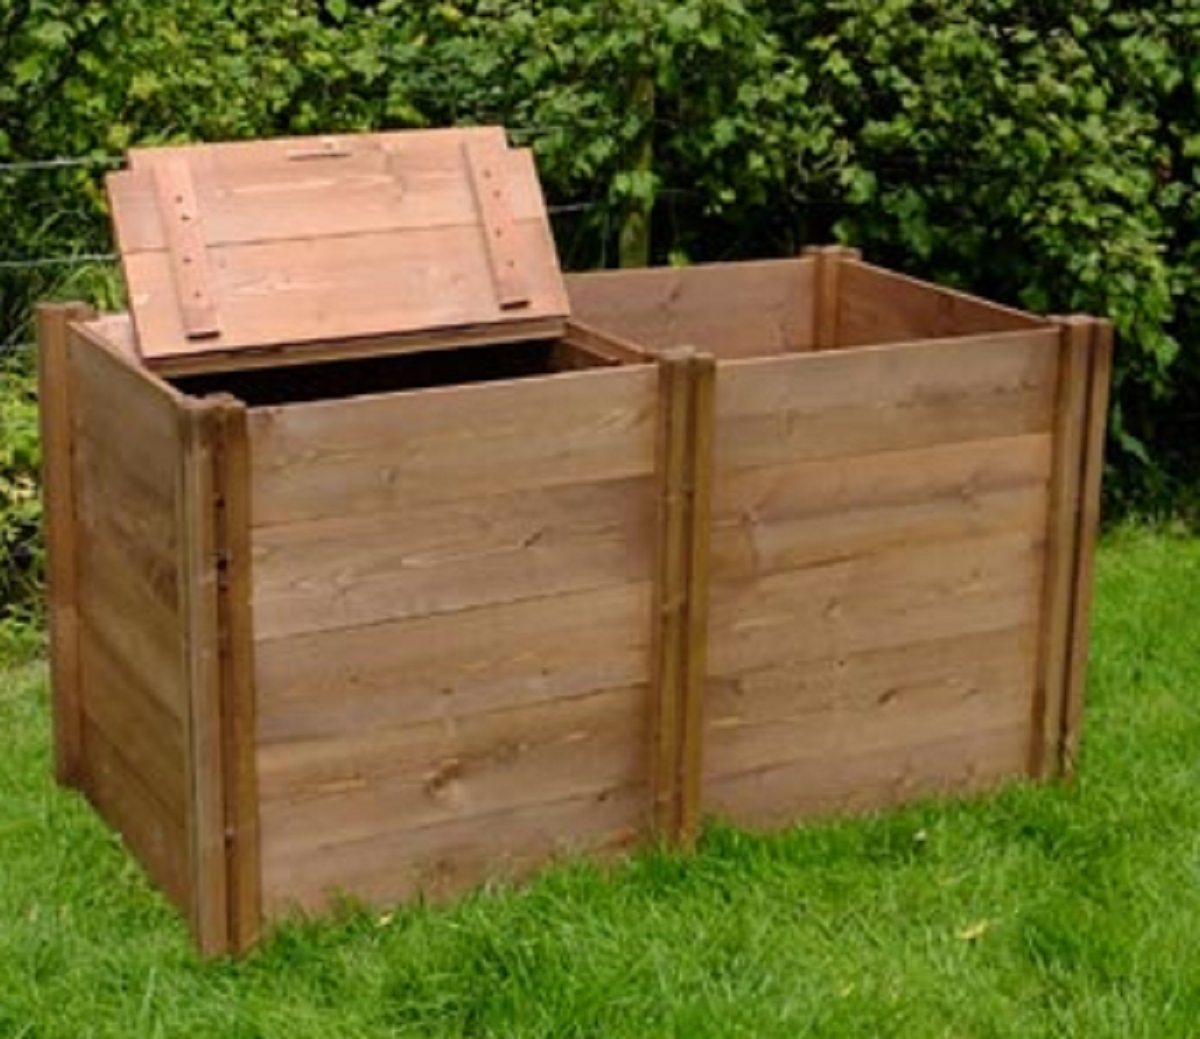 how to build a wooden composter